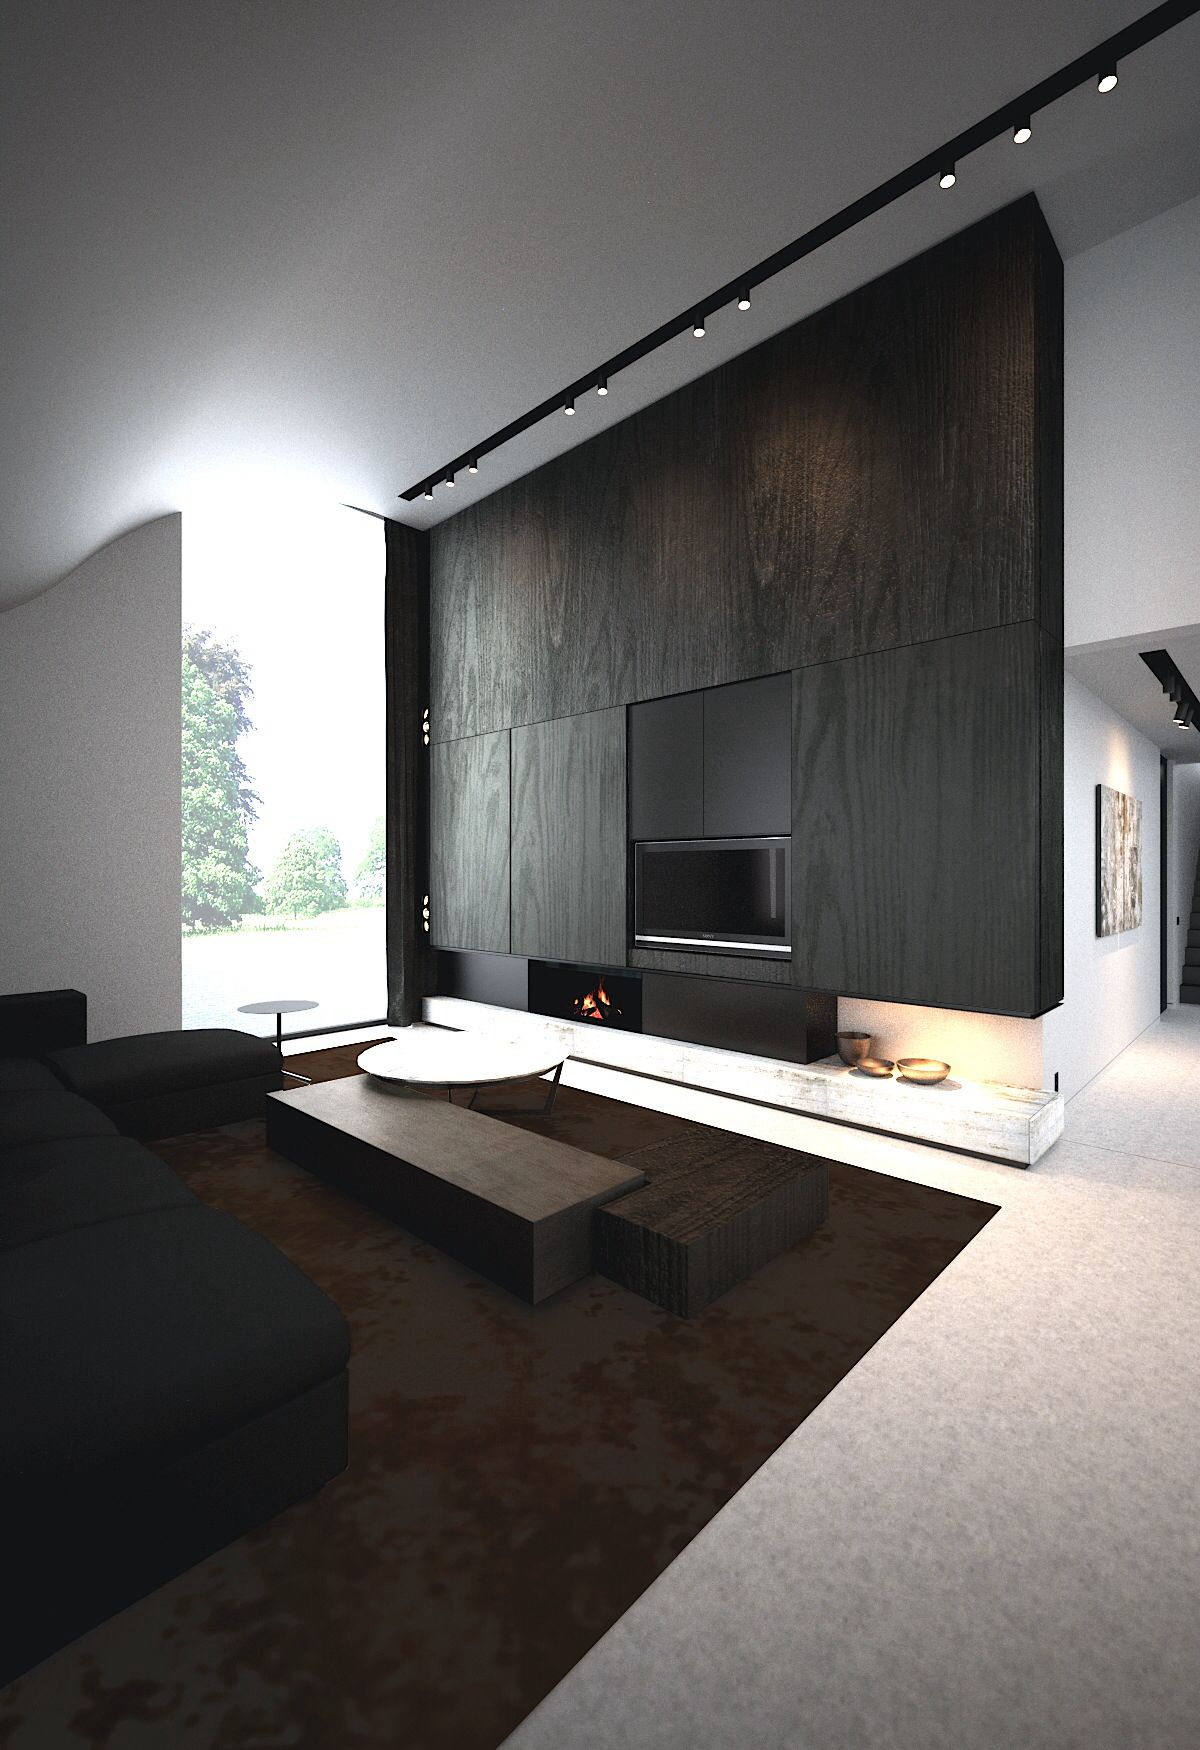 Interior Architecture Fire Place Salotti Minimalisti Interni